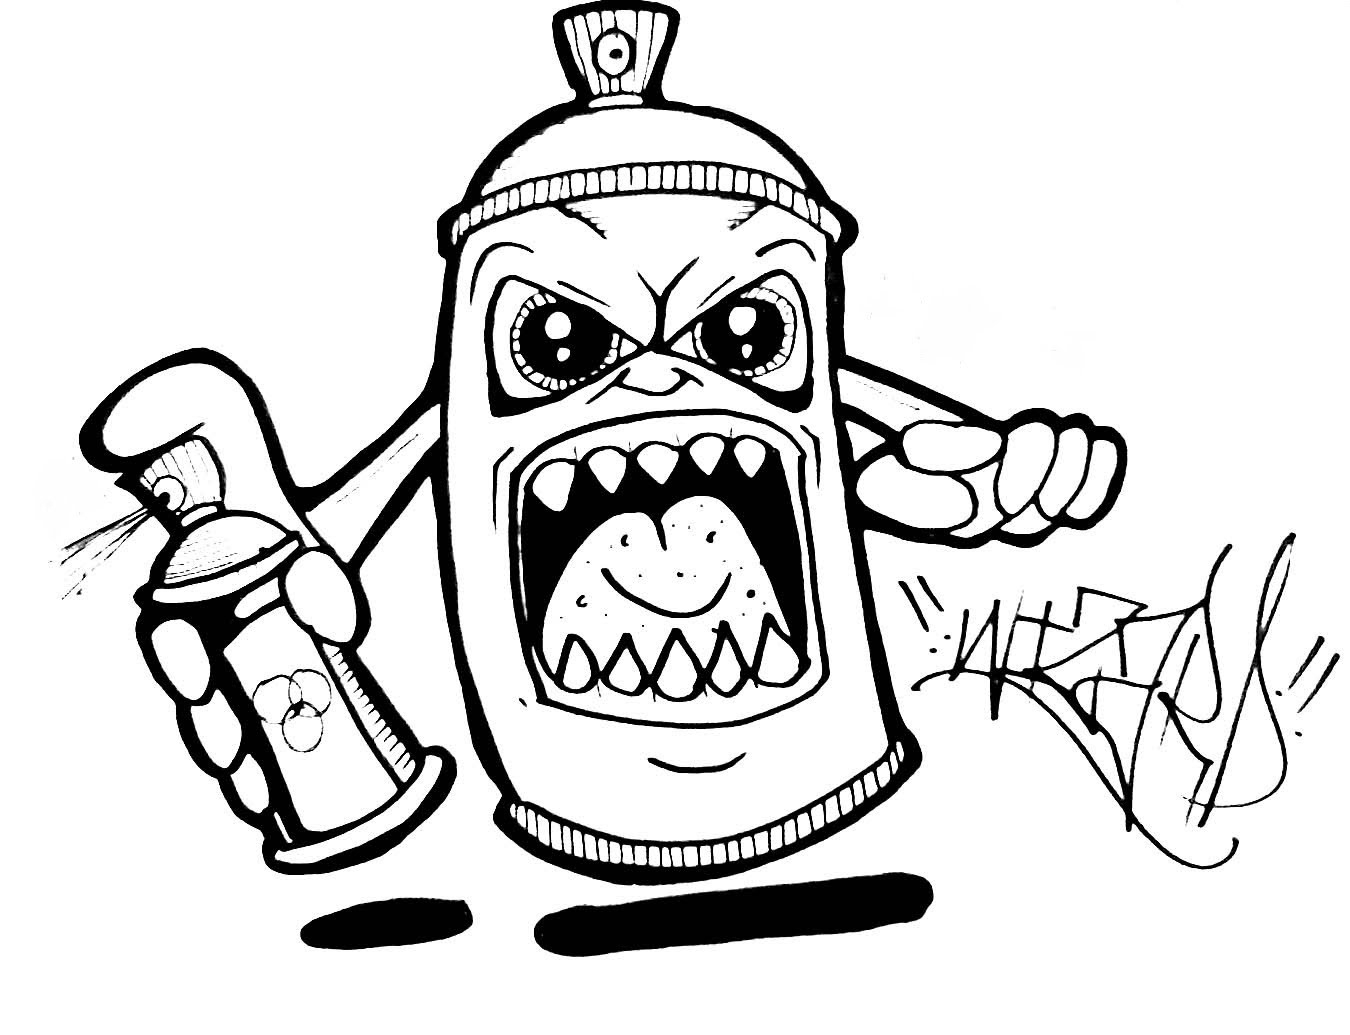 1350x1035 Graffiti Drawings Of Spray How To Draw A Spray Can 2015